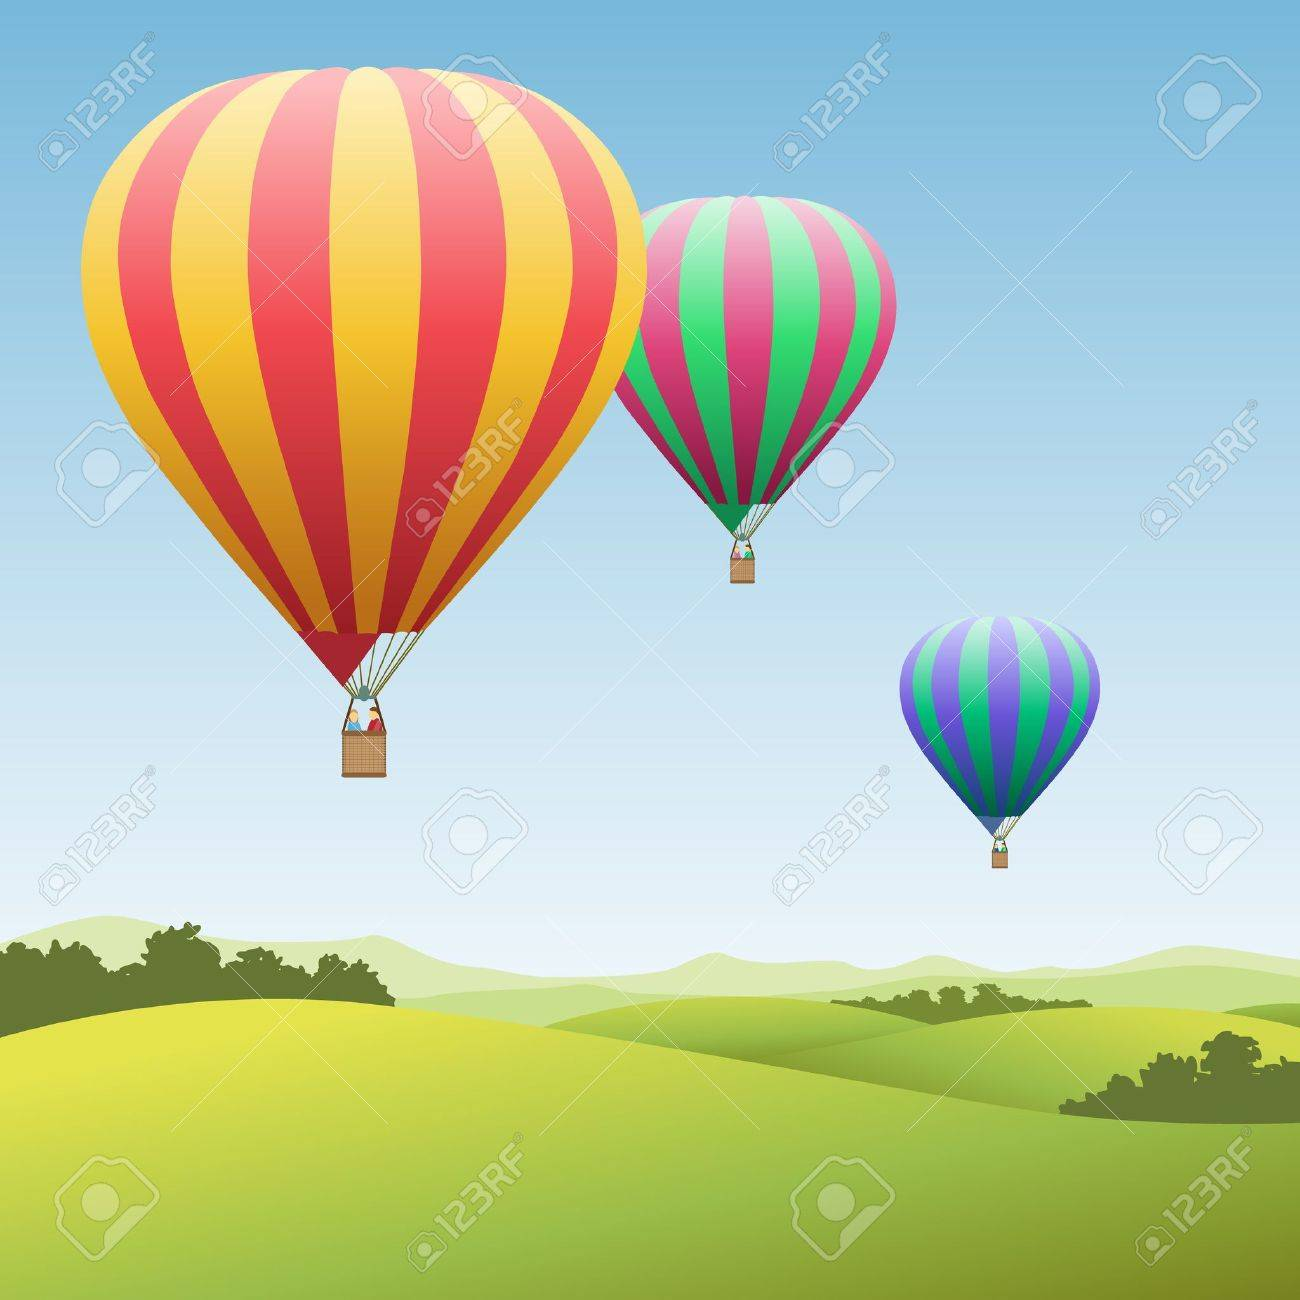 Three Colorful Hot Air Balloons Stock Vector - 14559889